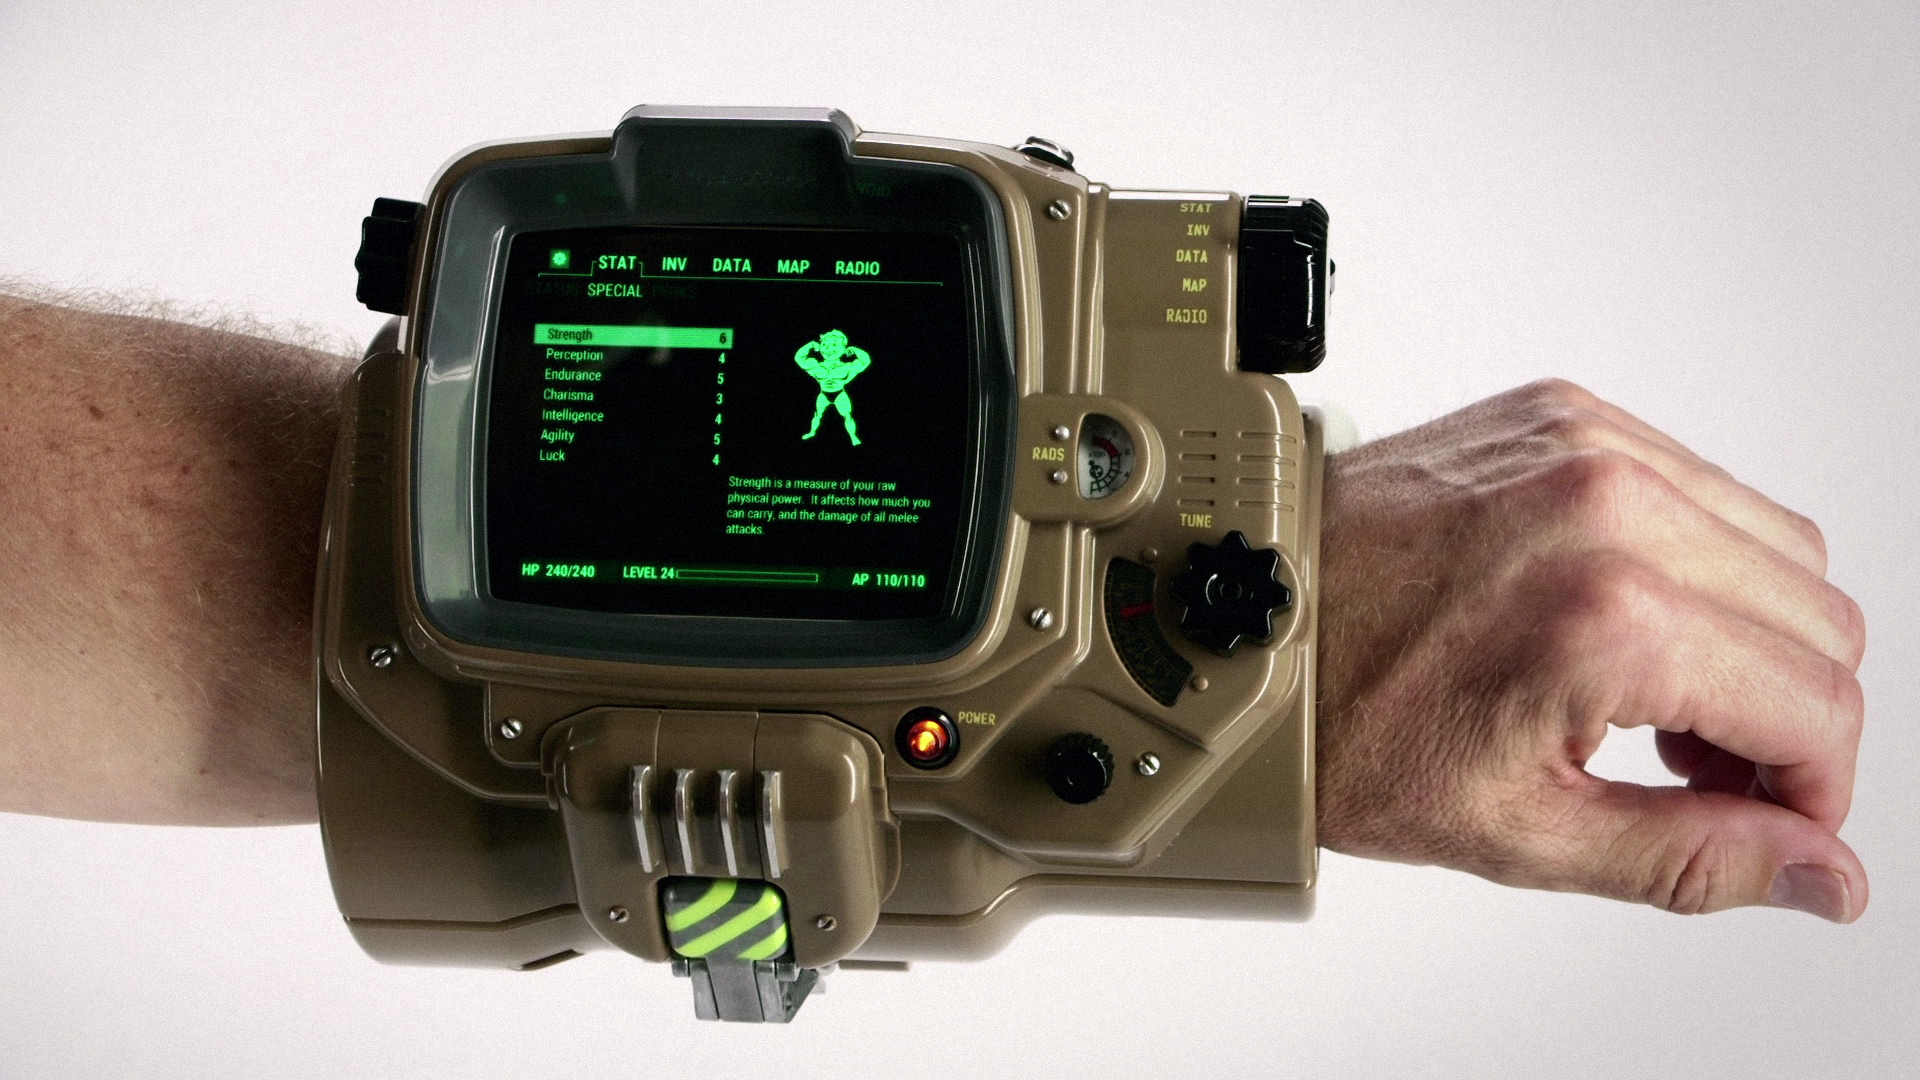 Fallout 4 is coming out this year — here's what you need to know